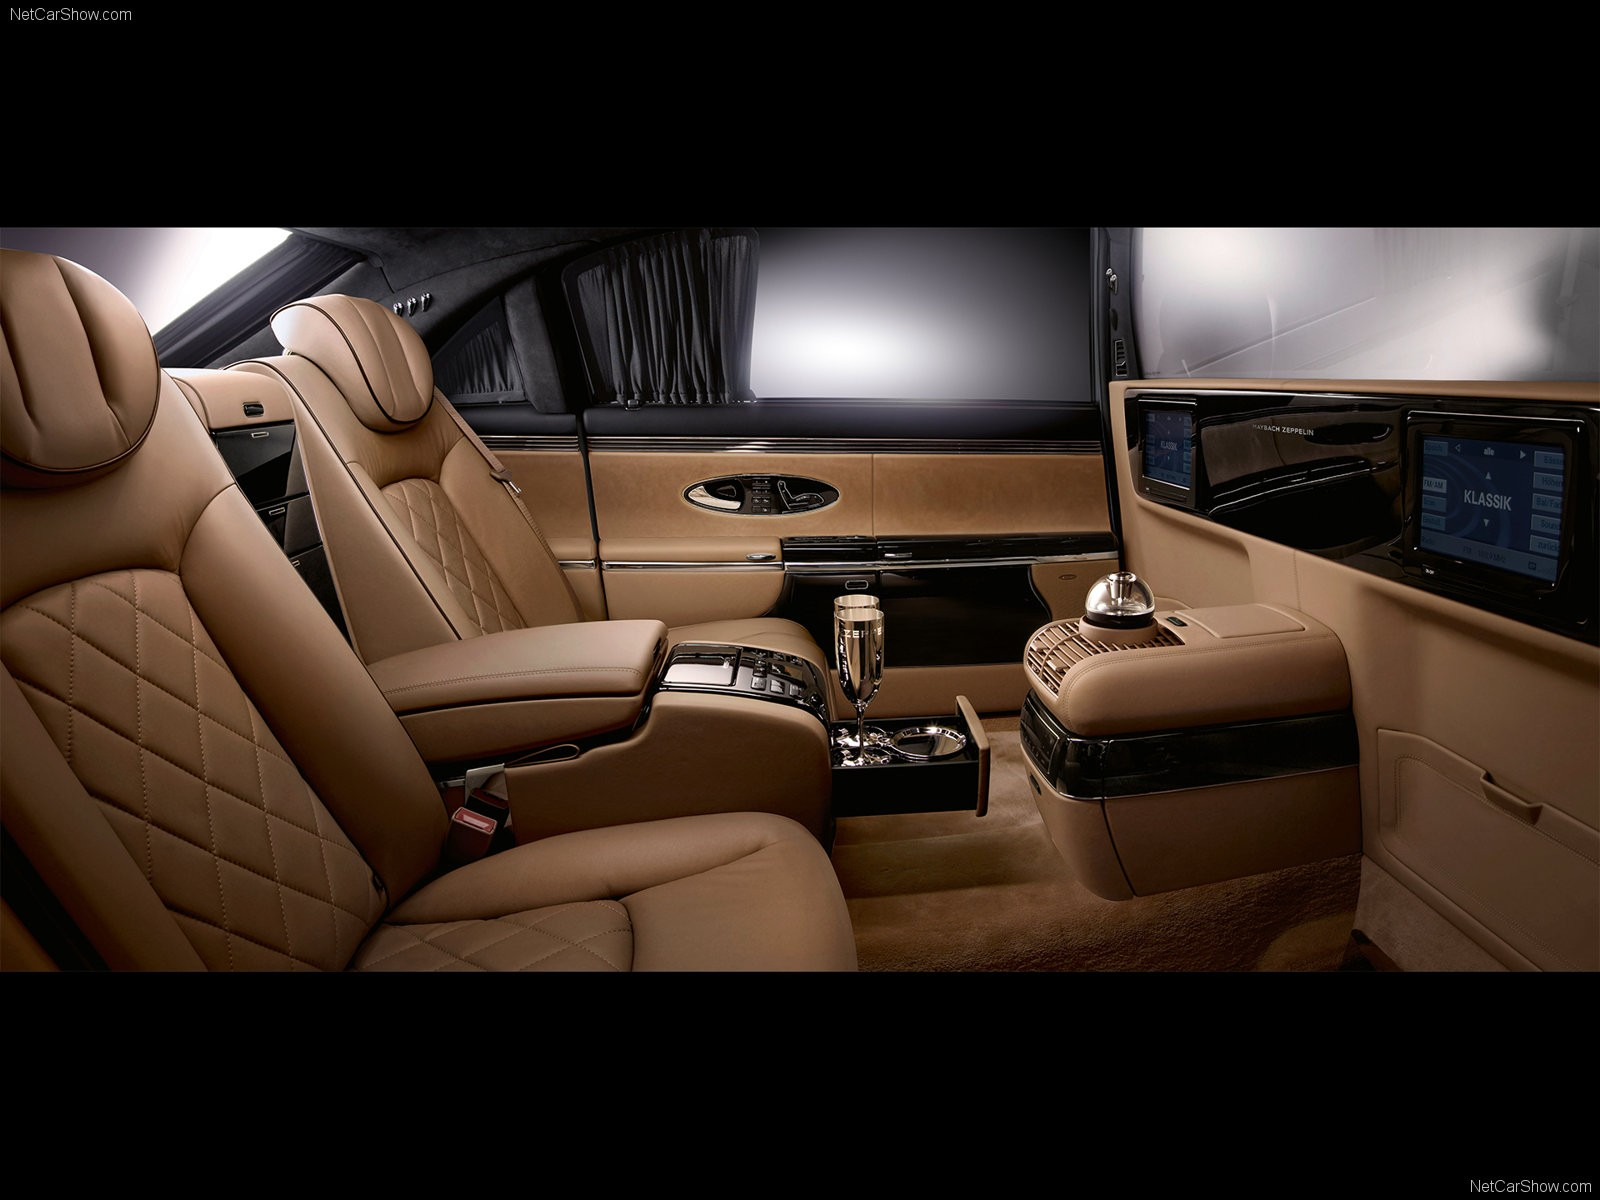 Car interior brown - Leather Cars Zeppelin Maybach Car Interiors Luxury Maybach Zeppelin Wallpaper 1600x1200 187285 Wallpaperup